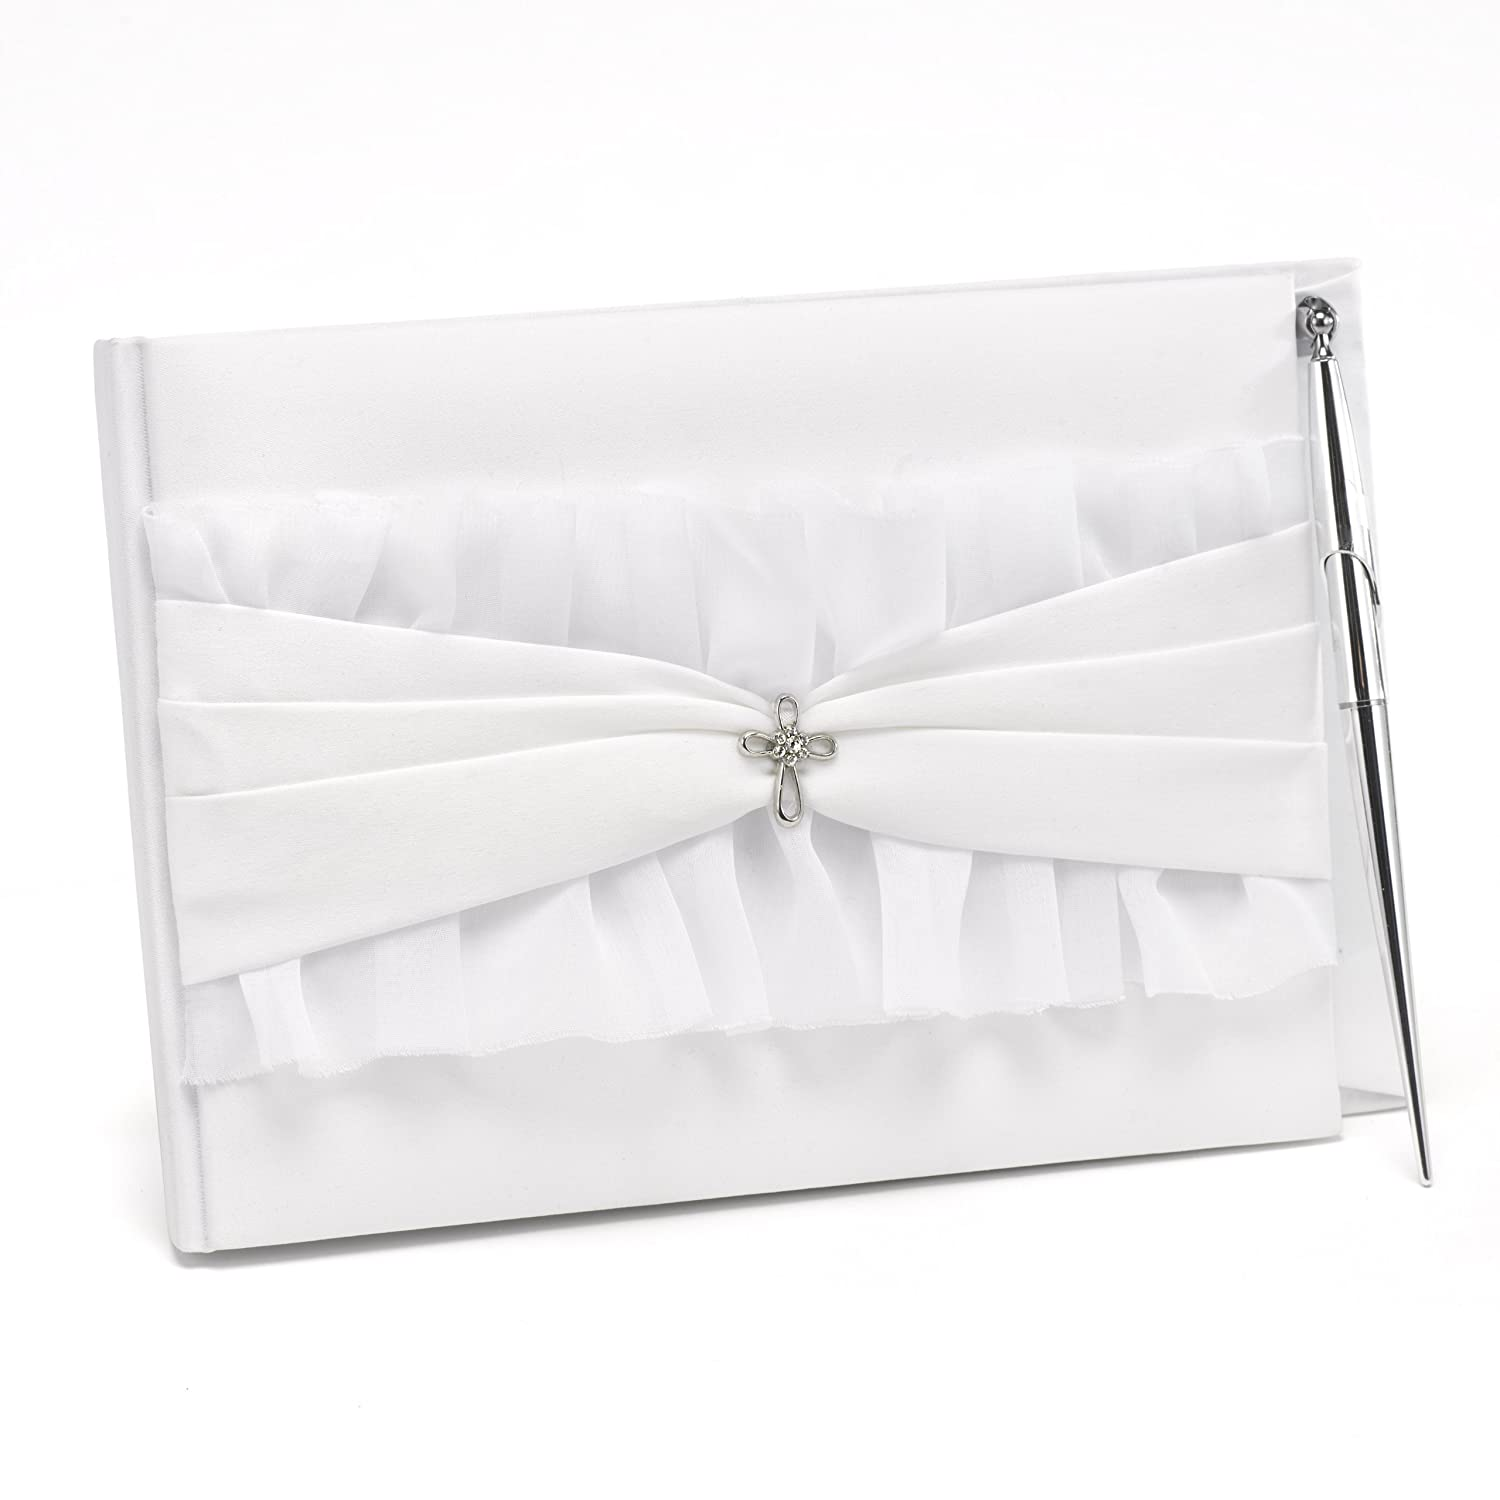 Hortense B Guest Book and Pen Set Sourced Wit 20533 Hewitt Faith and Love Wedding Accessories